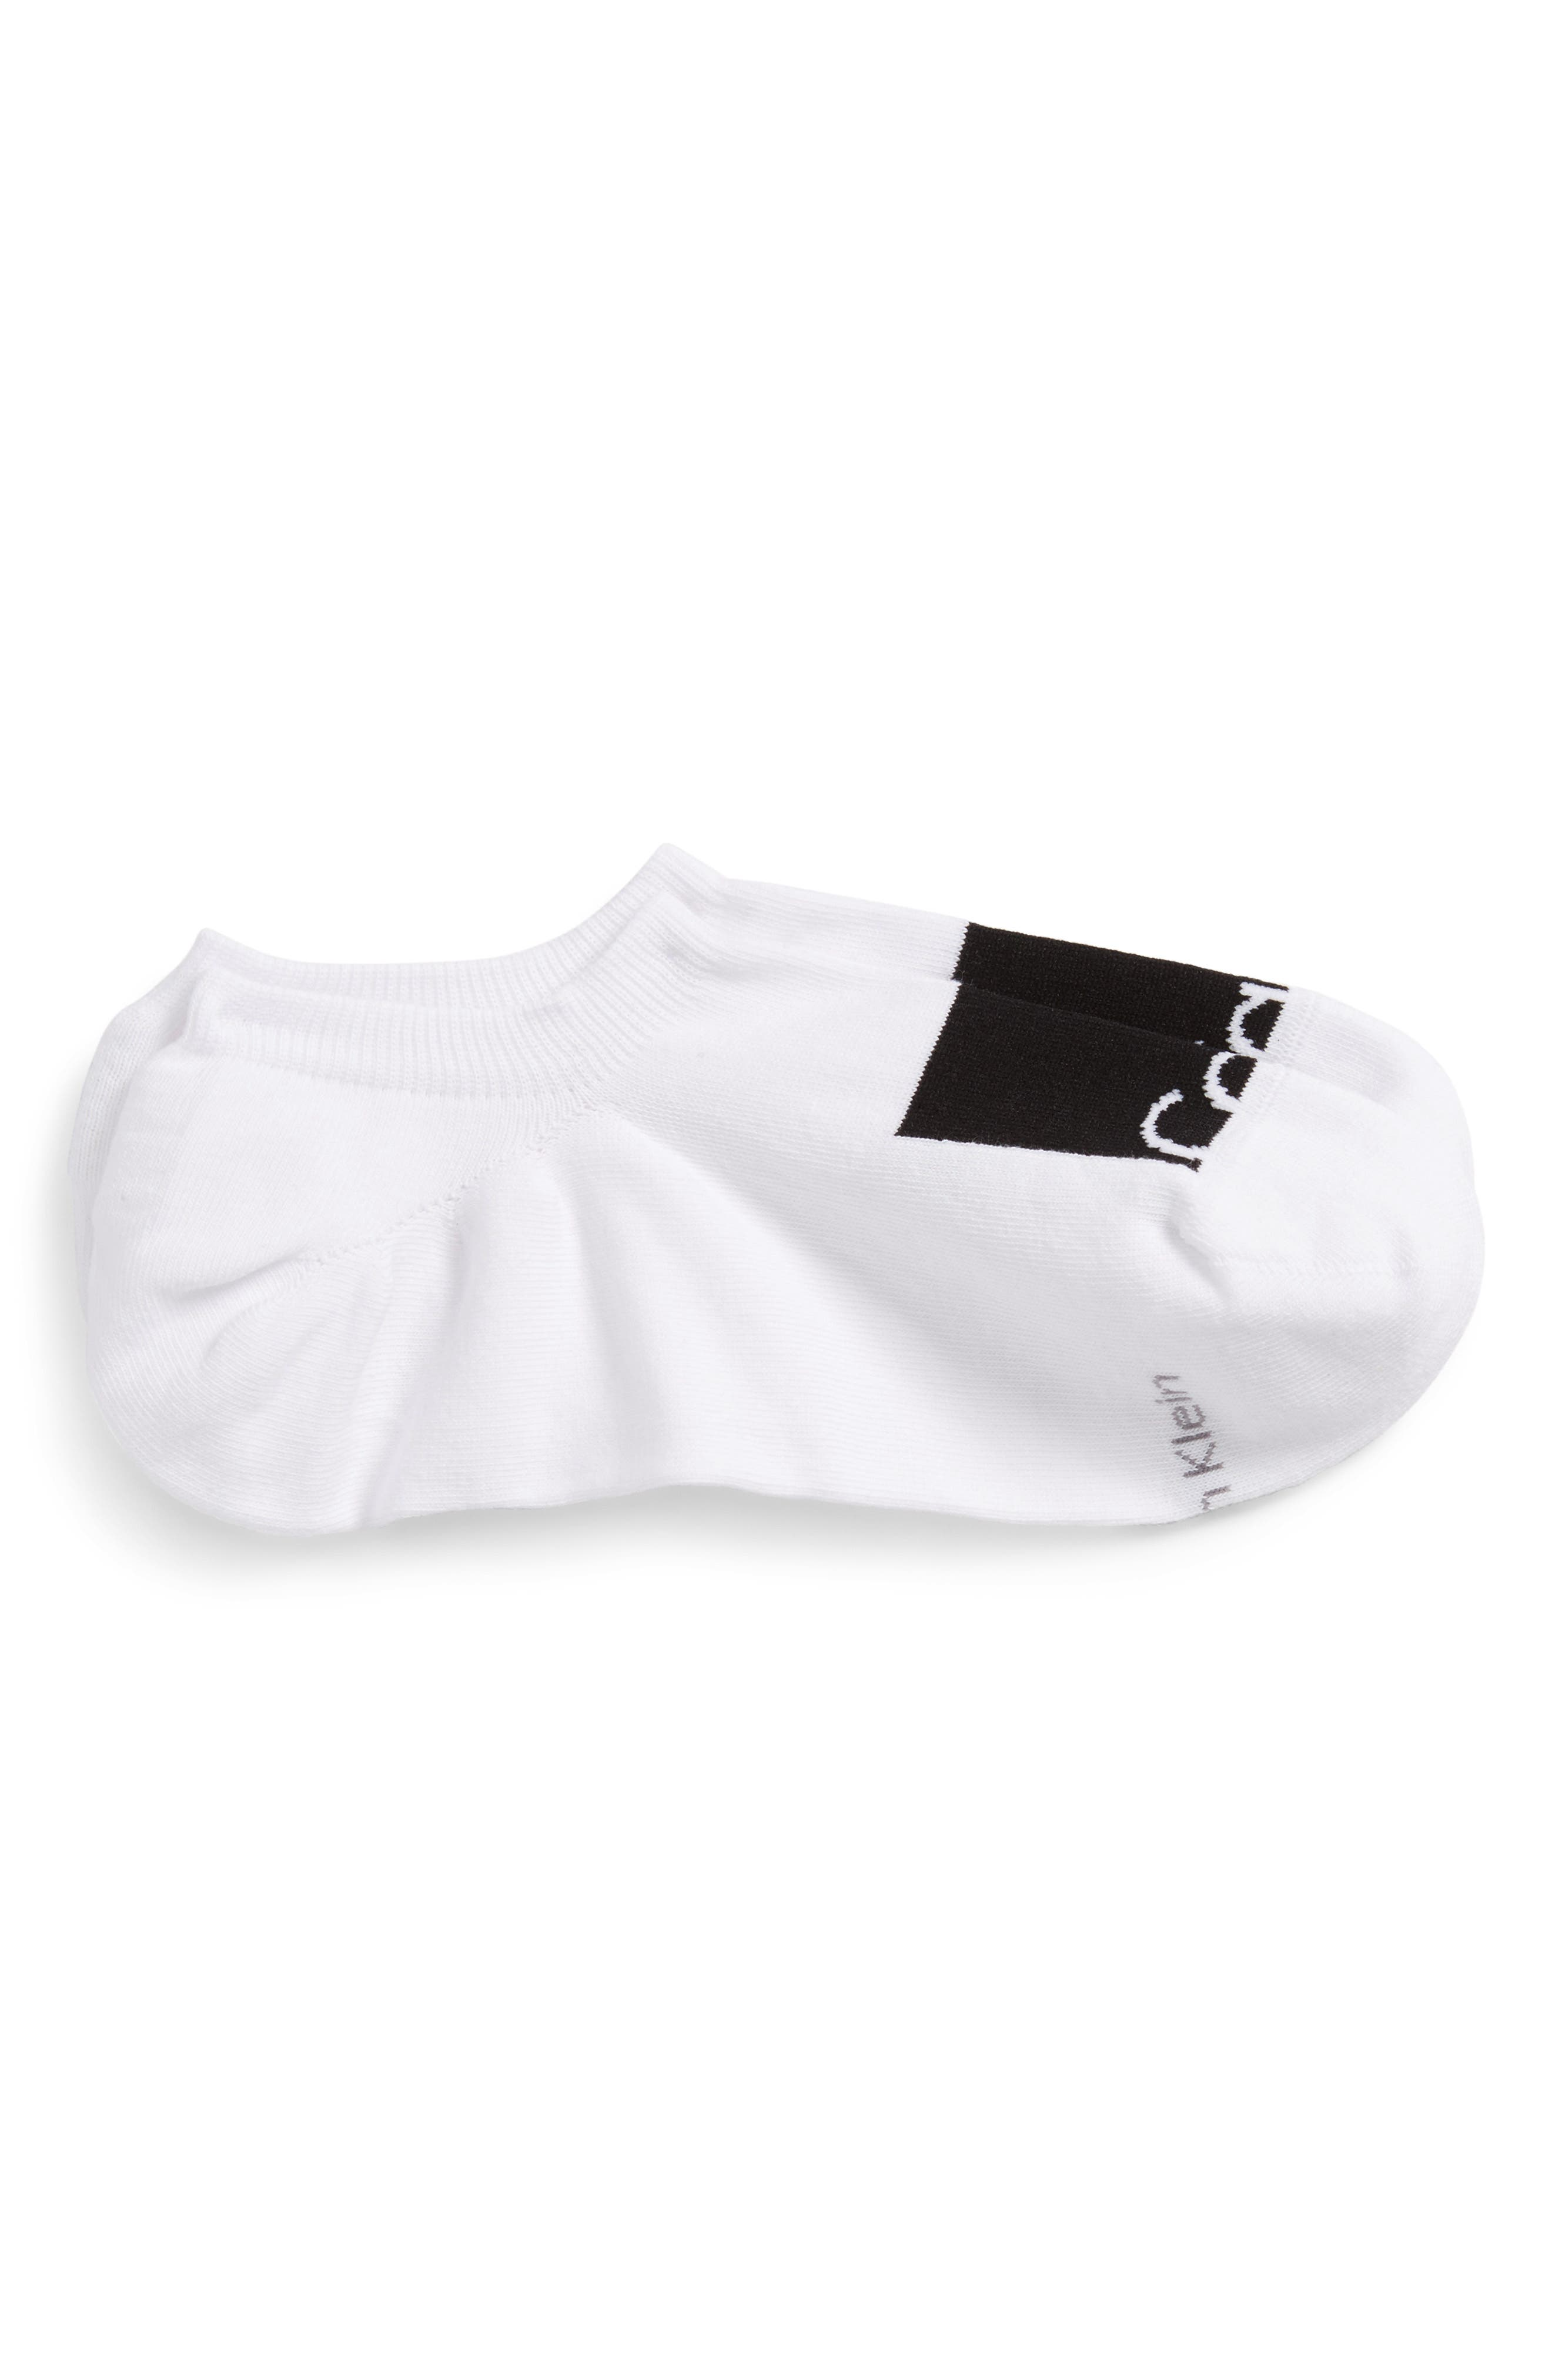 New Gen Logo No-Show Socks,                         Main,                         color, White